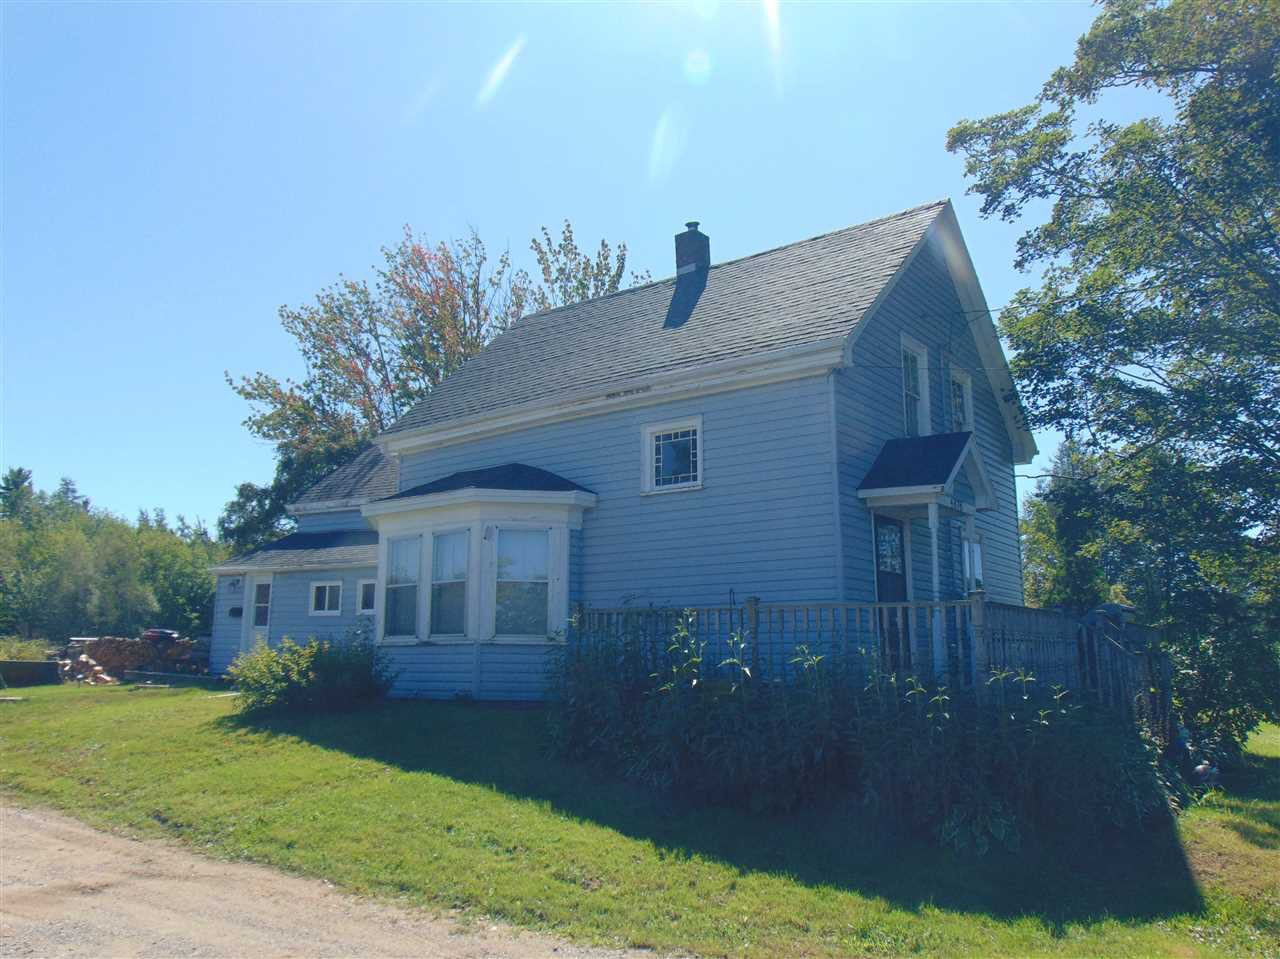 Main Photo: 4876 BROOKLYN Street in Somerset: 404-Kings County Farm for sale (Annapolis Valley)  : MLS®# 201921542